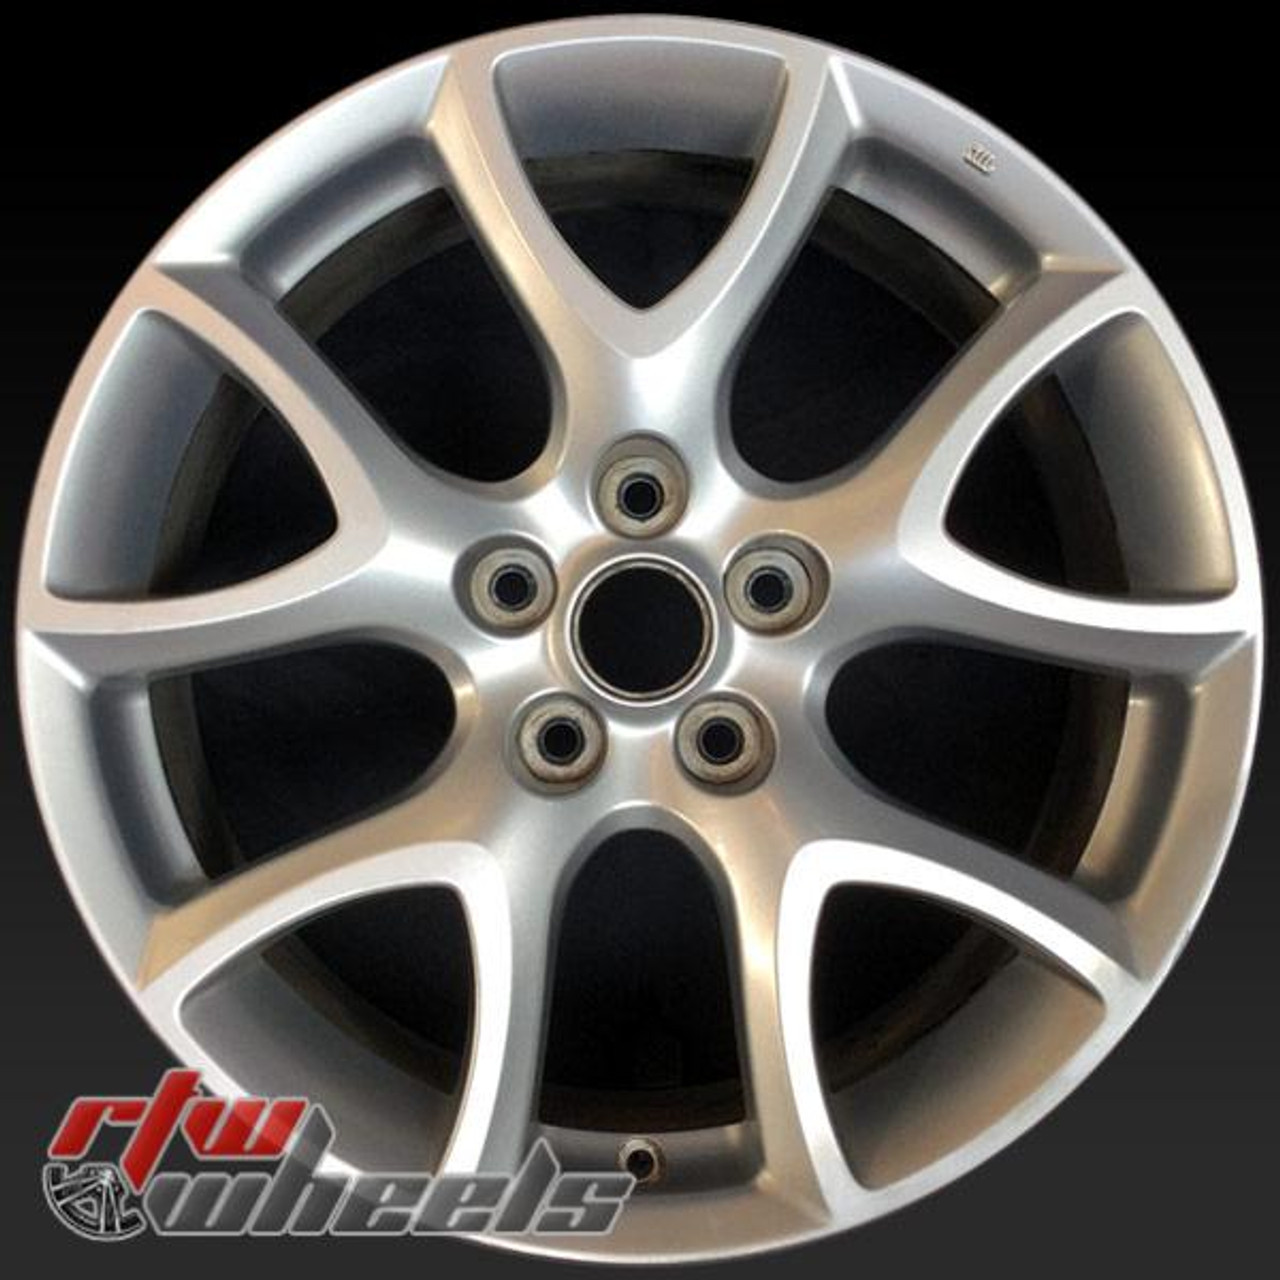 Mazda 3 Rims >> 18 Mazda 3 Oem Wheels For Sale 2010 2012 Silver Rims 64930